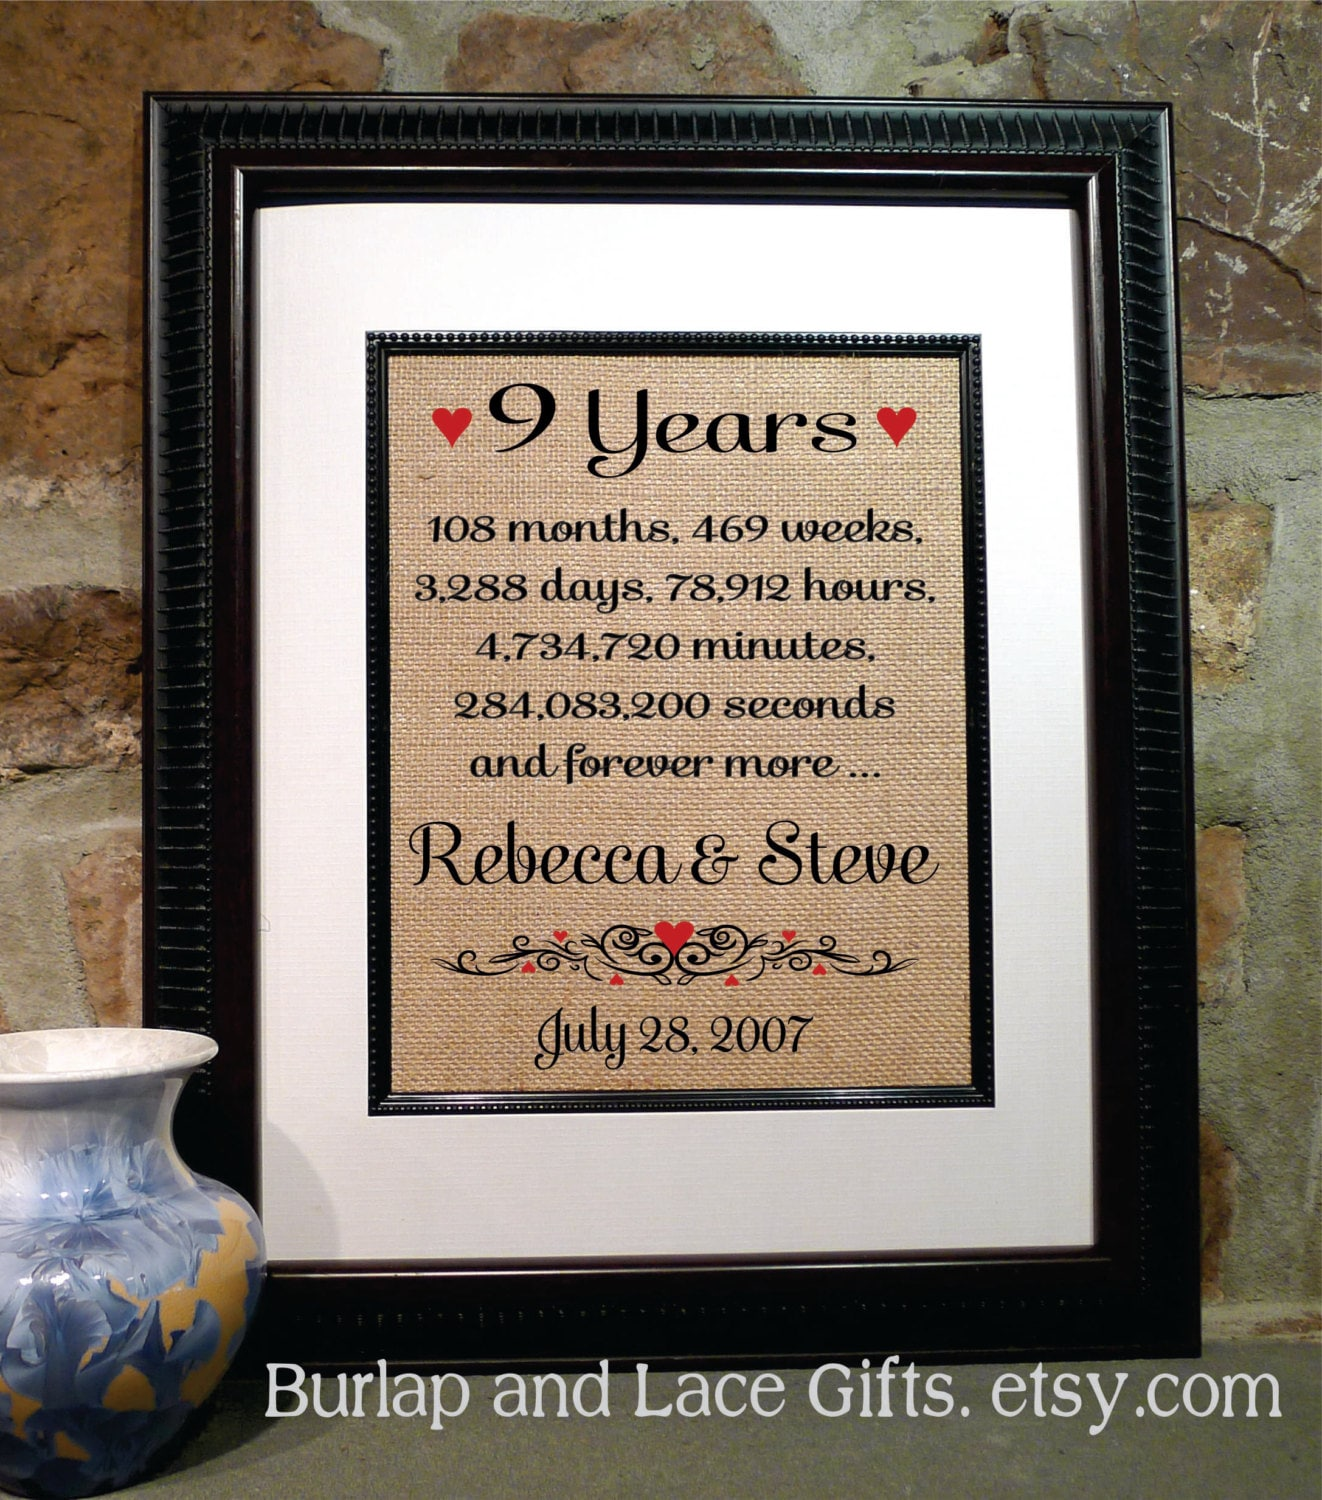 9th Anniversary Gifts For Husband: 9th Anniversary 9 Years Together Years Months Weeks Days